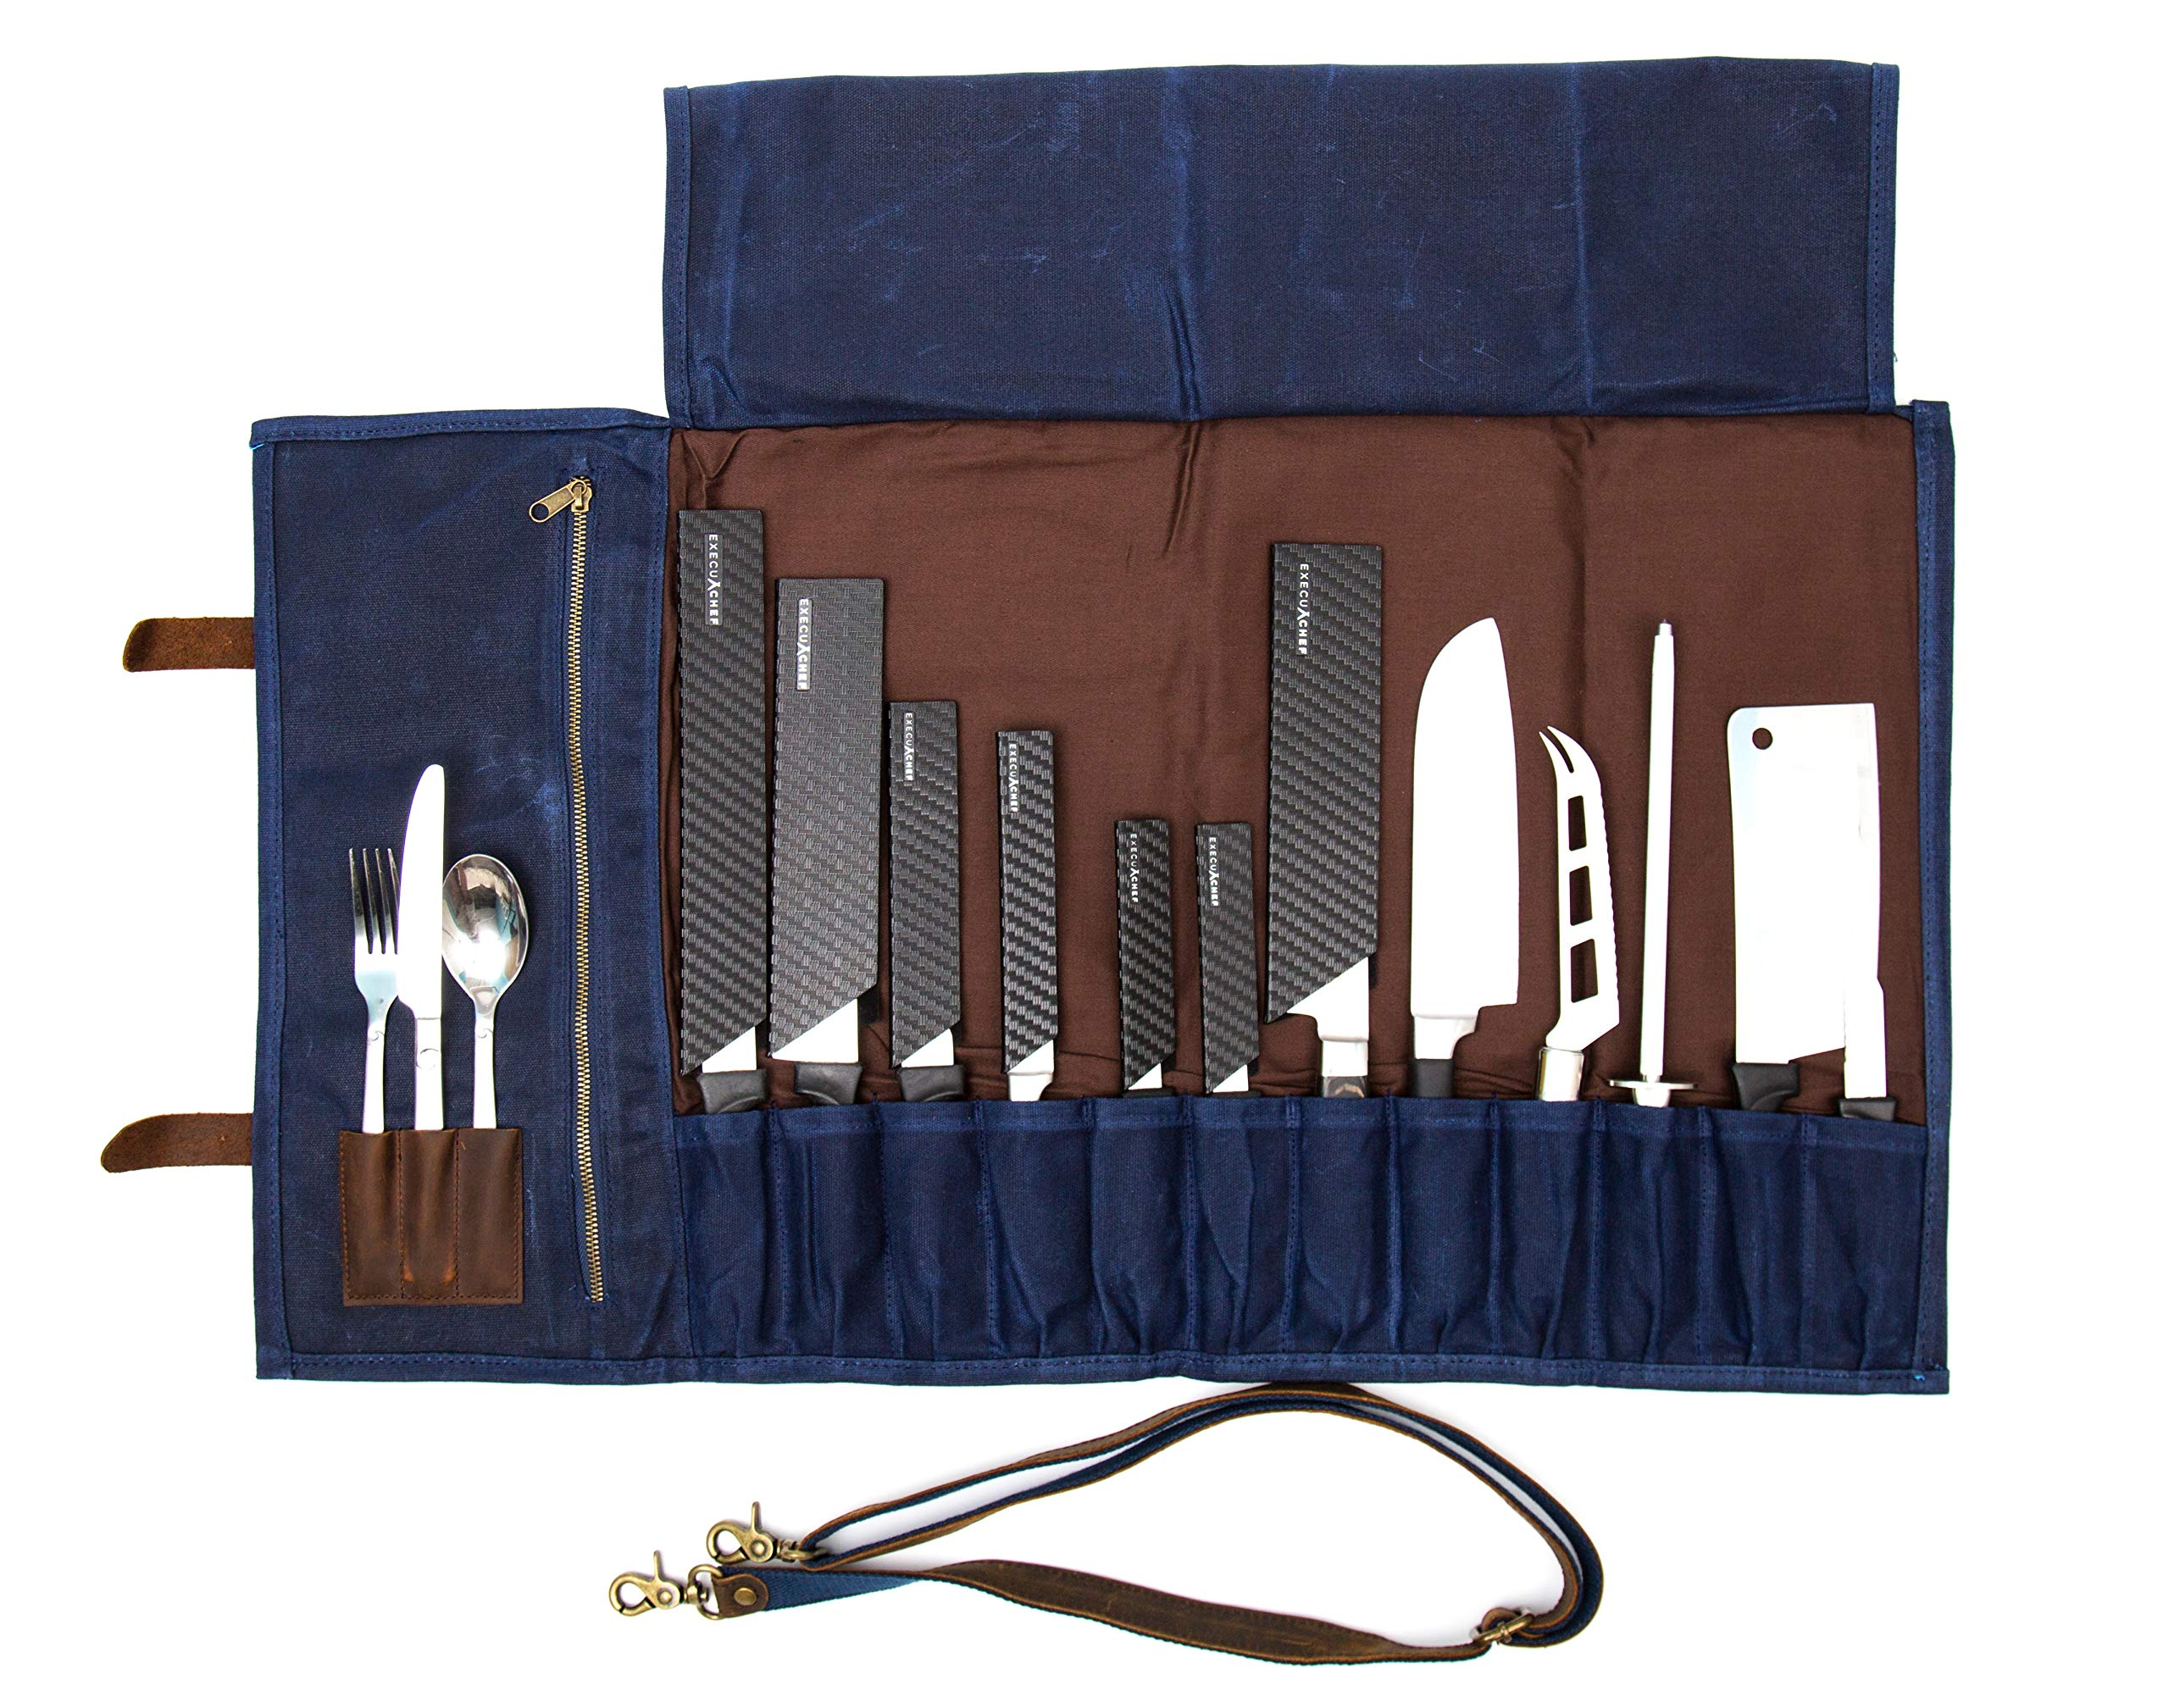 ExecuChef Waxed Canvas Knife Roll | 15 Knife Slots, Card Holder and a Large Zippered Pocket | Genuine Top Grain Leather, Cloth and Brass Buckles | For Professional Chefs and Culinary Students (Blue) by ExecuChef